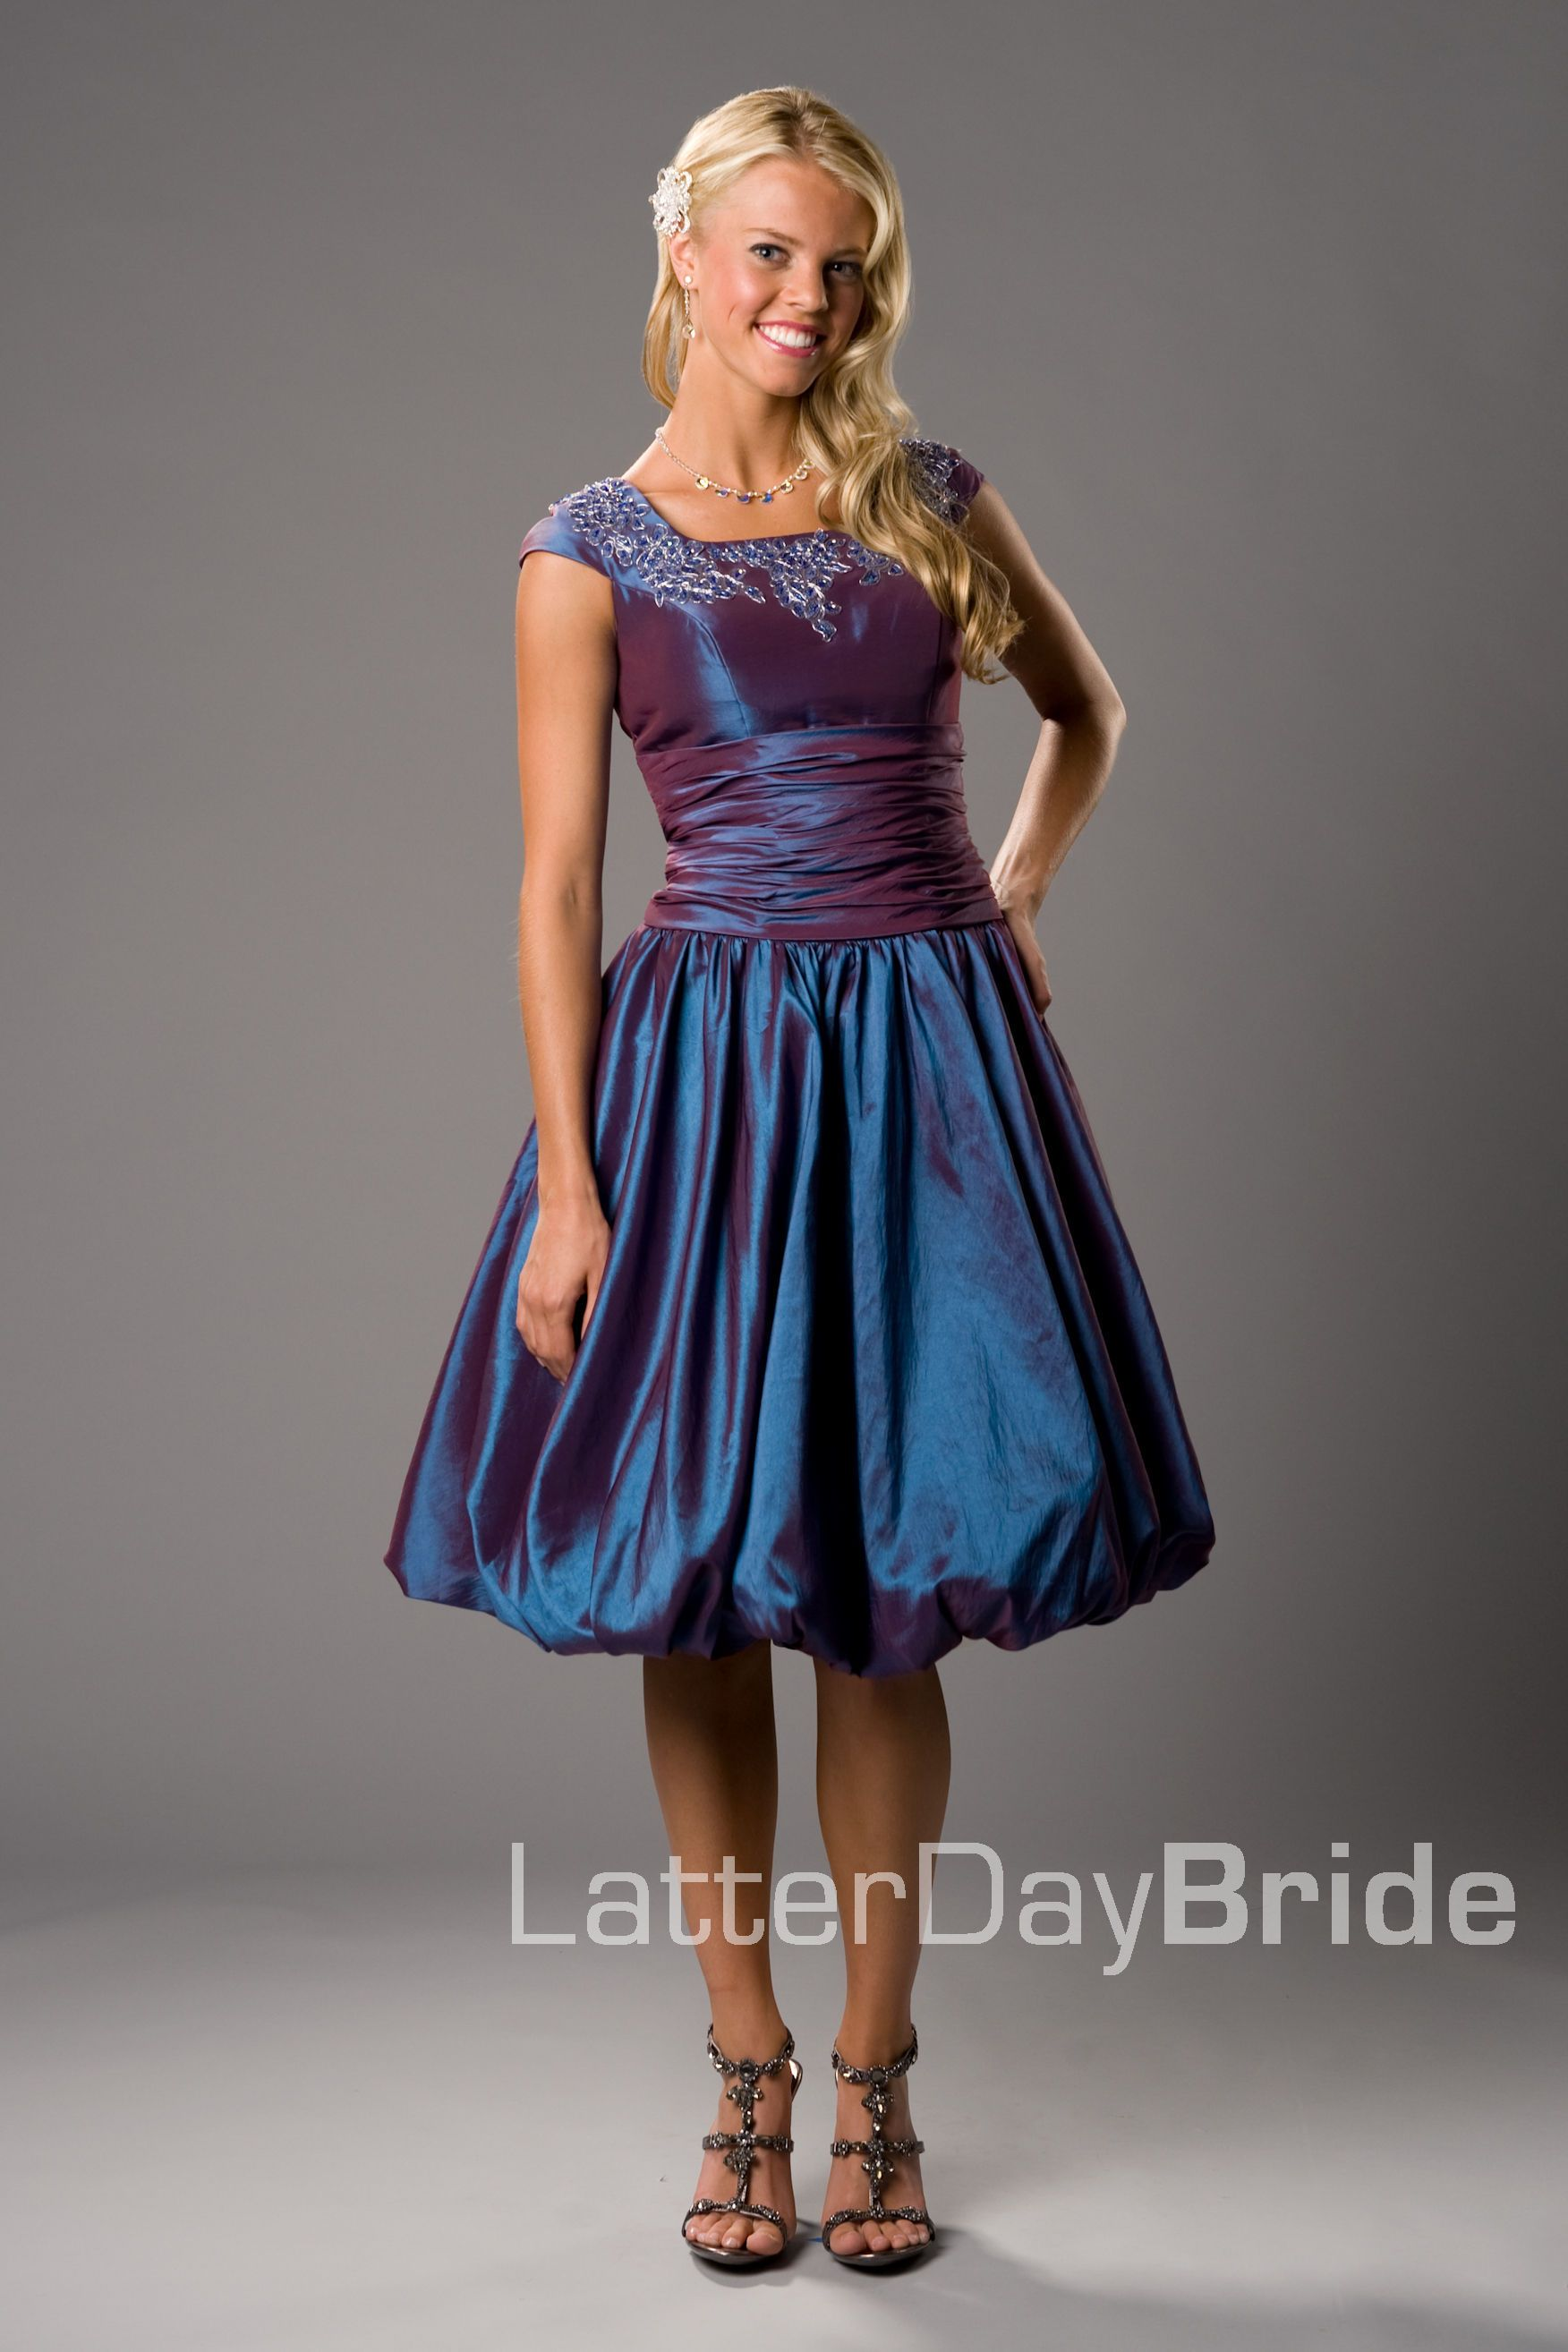 Bridesmaid prom elsie latterdaybride prom modest mormon bubble dress easy moms bubble skirt pattern with the new dress pattern top and voila this dress is complete ombrellifo Gallery